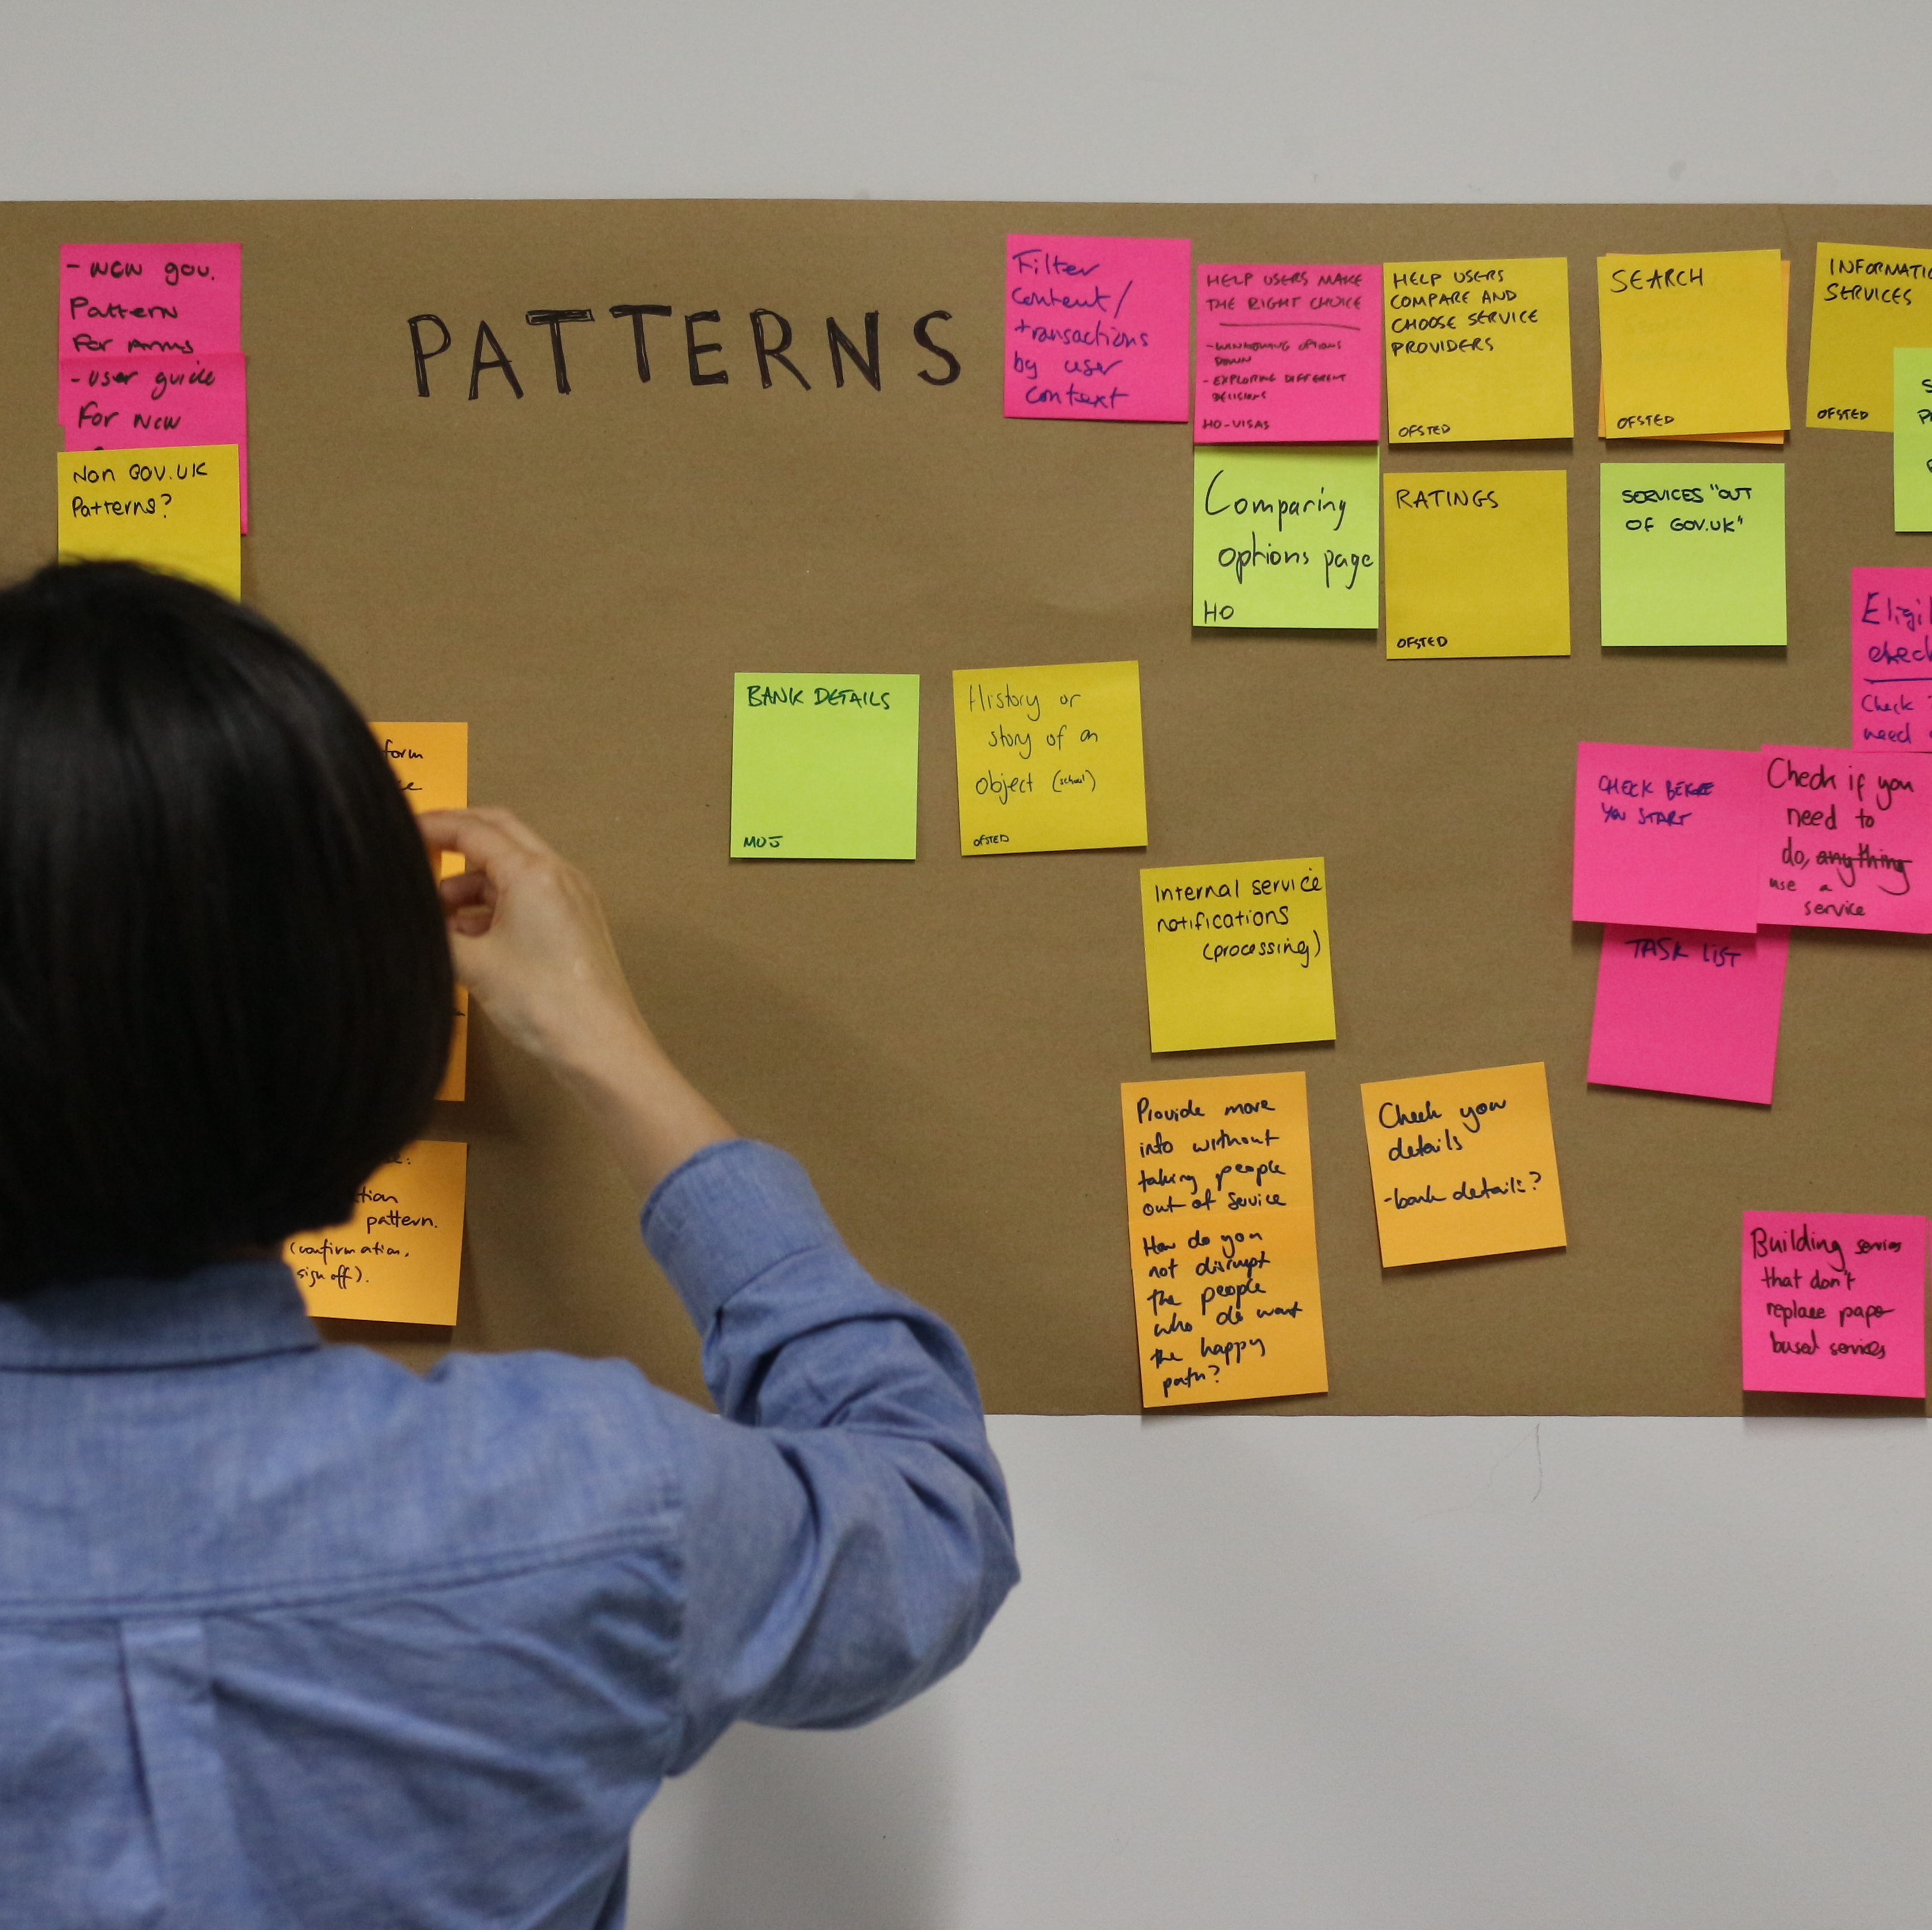 Post-it note patterns